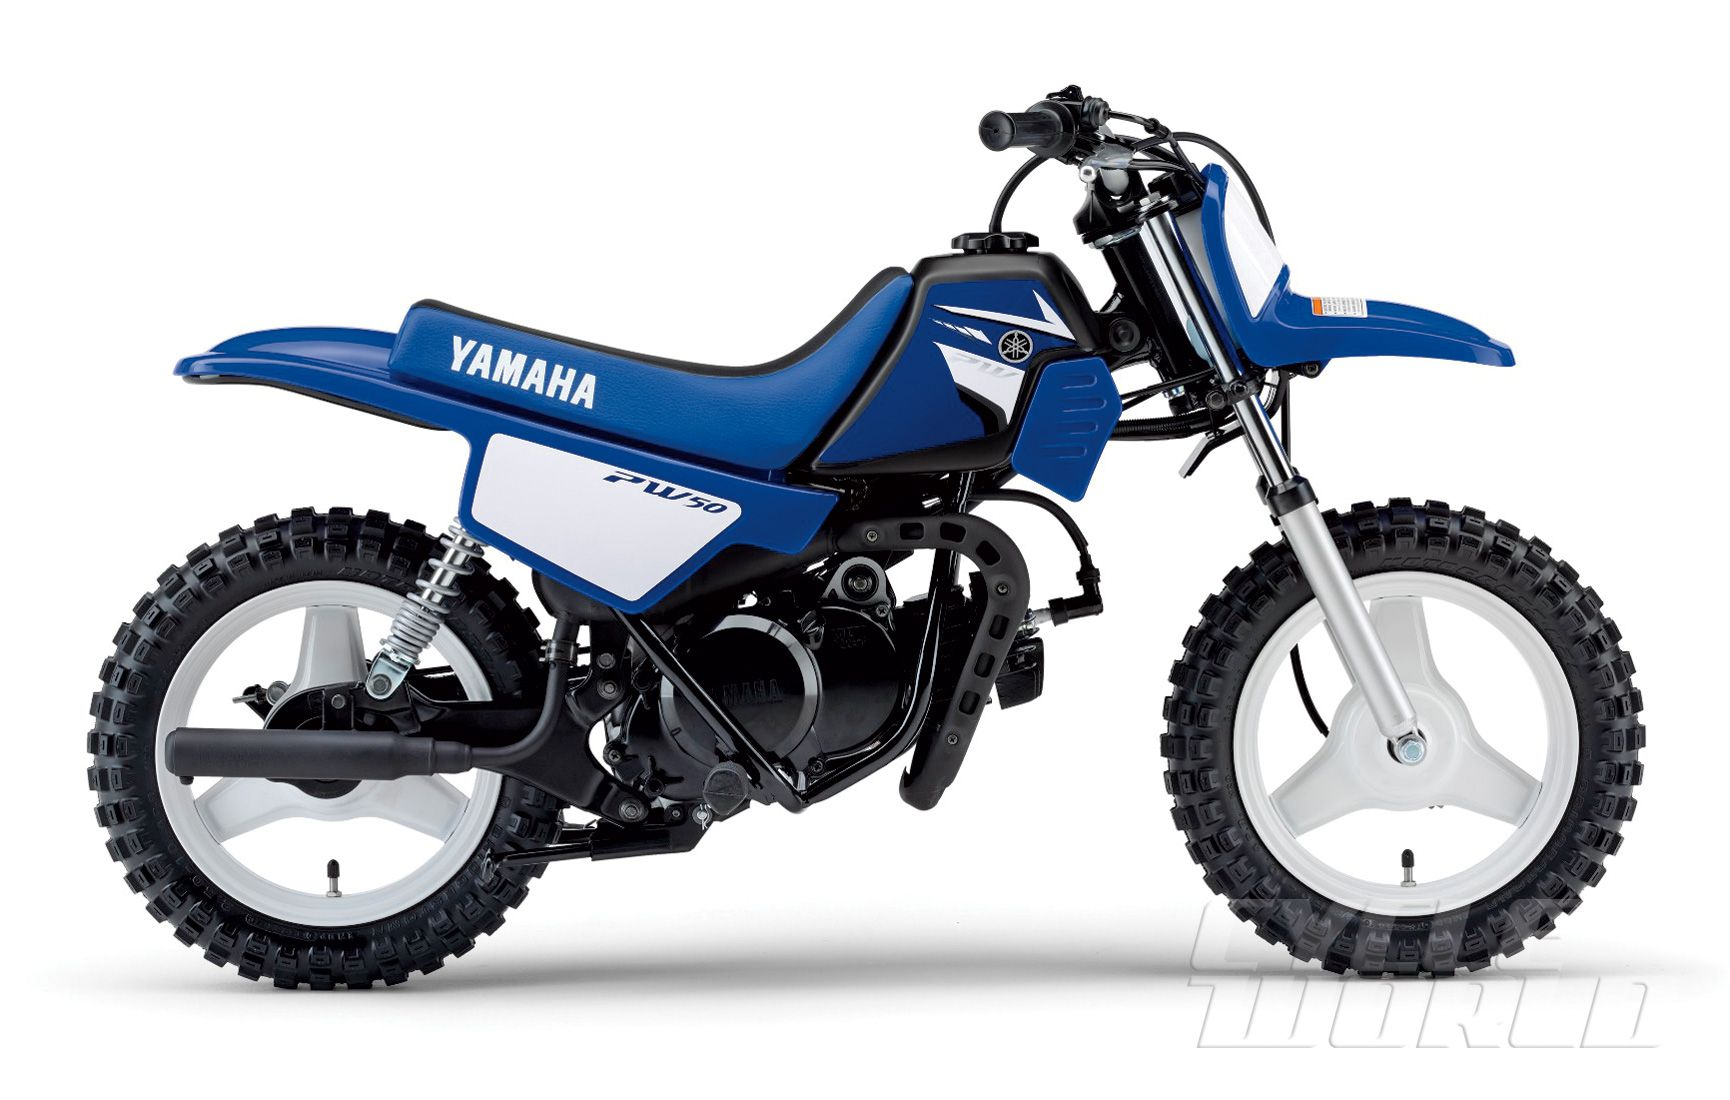 Yamaha Pw50 Playbike Best Used Motorcycle Review Pricing Specs Cycle World